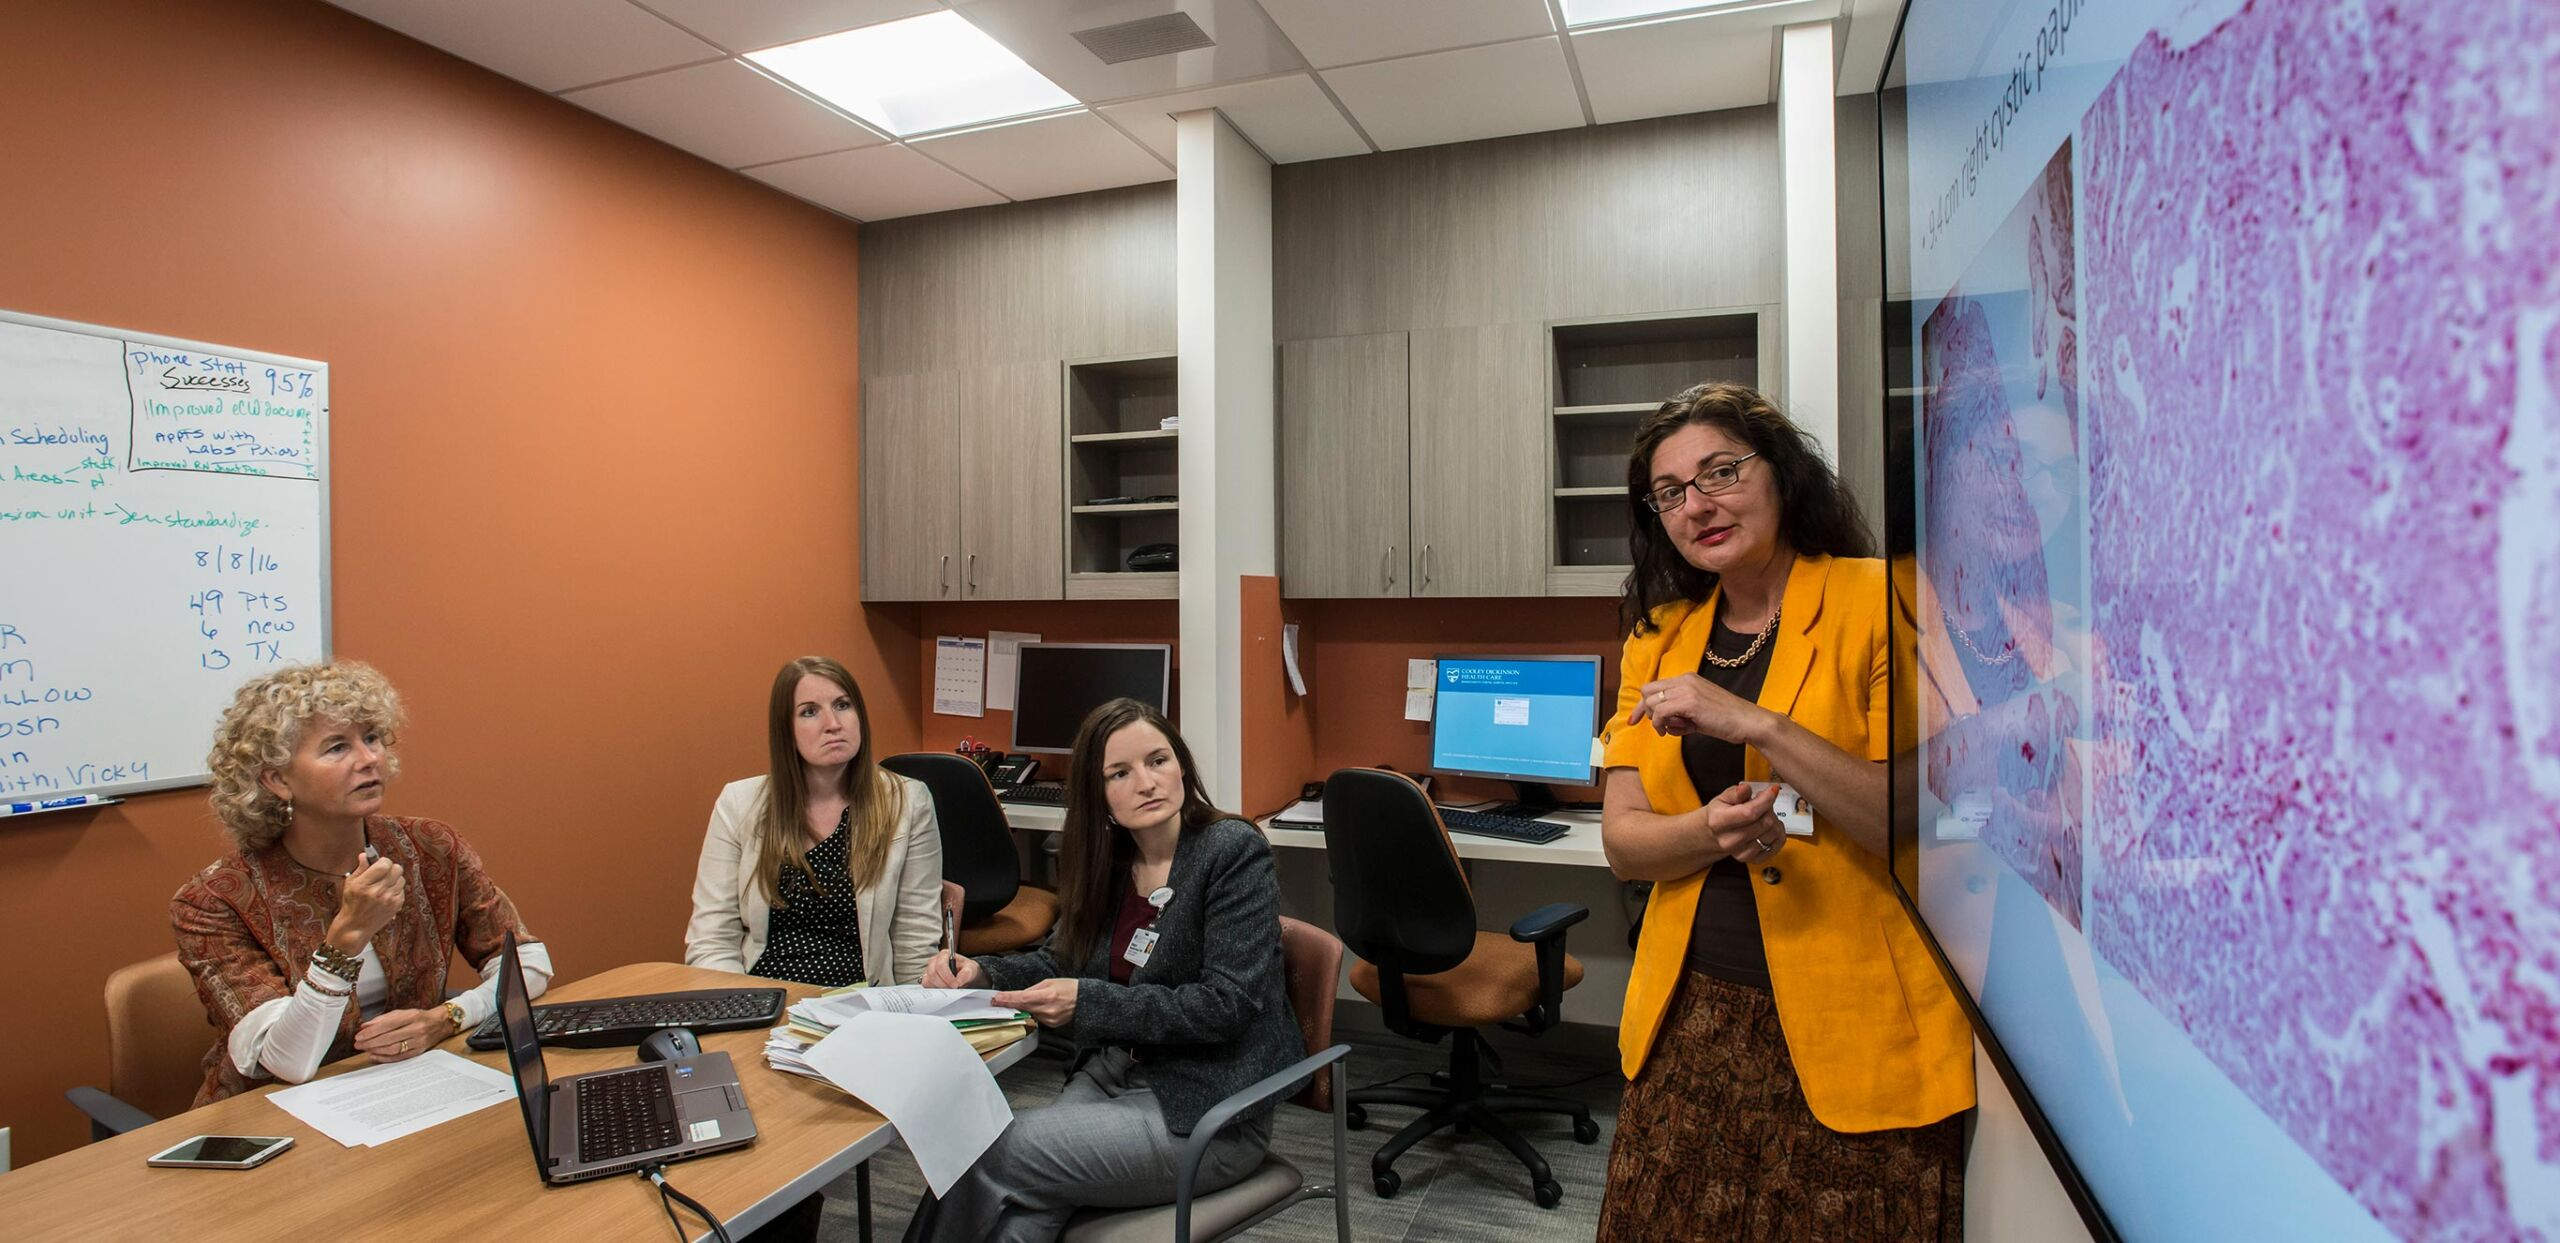 Marinescu, MD, reviews diagnostic images with Dhara MacDermed, MD, Michele Helms, MD, and Lindsay Rockwell, MD, at the Mass General Cancer Center at Cooley Dickinson Hospital, 30 Locust Street, Northampton, MA 01060.